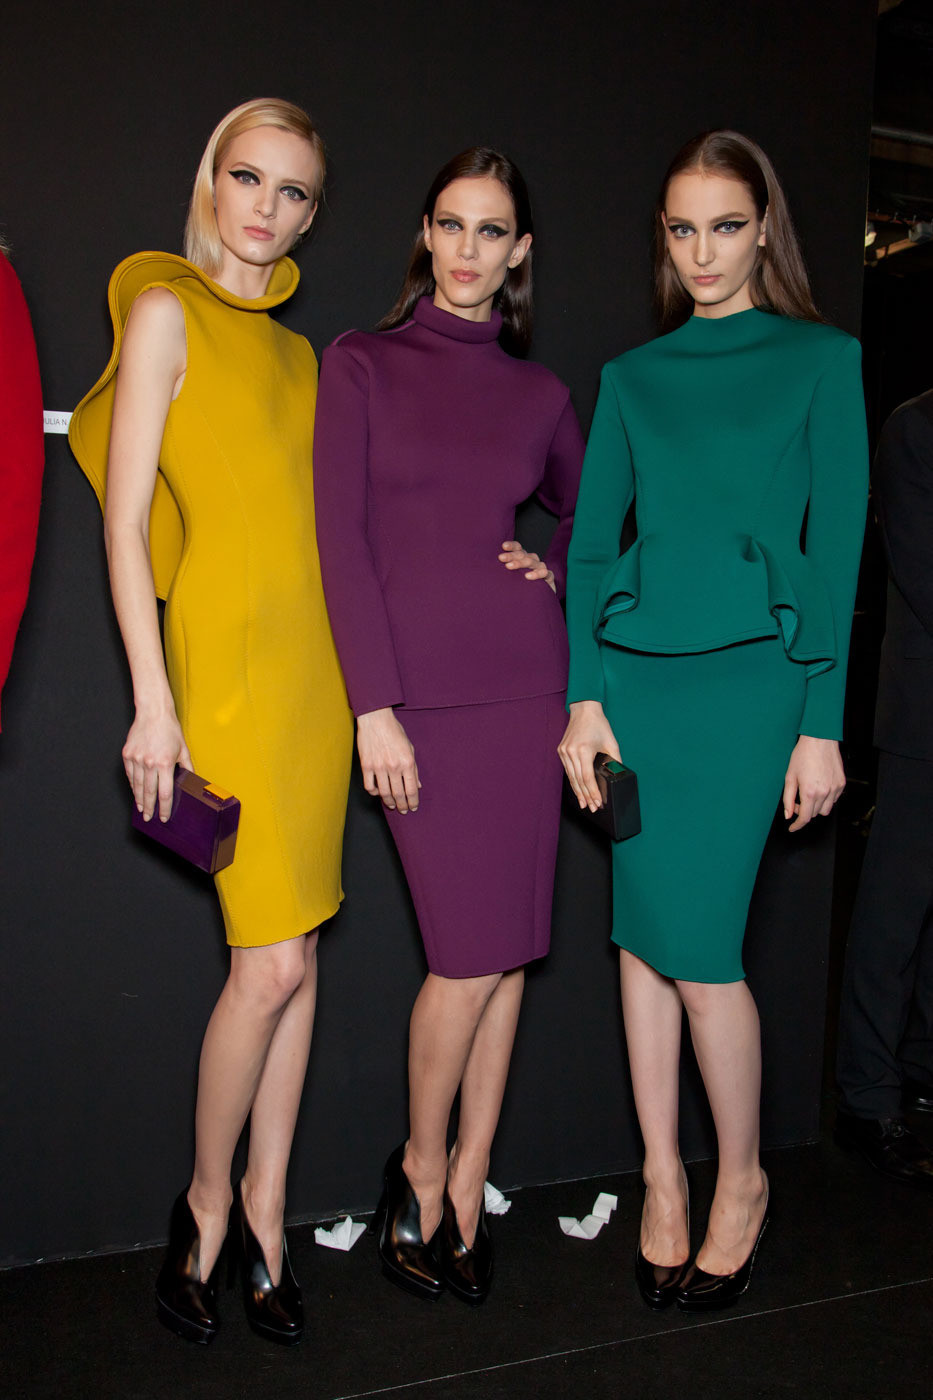 modfels:  Daria Strokous, Aymeline Valade, and Zuzanna Bijoch backstage at Lanvin Fall 2012